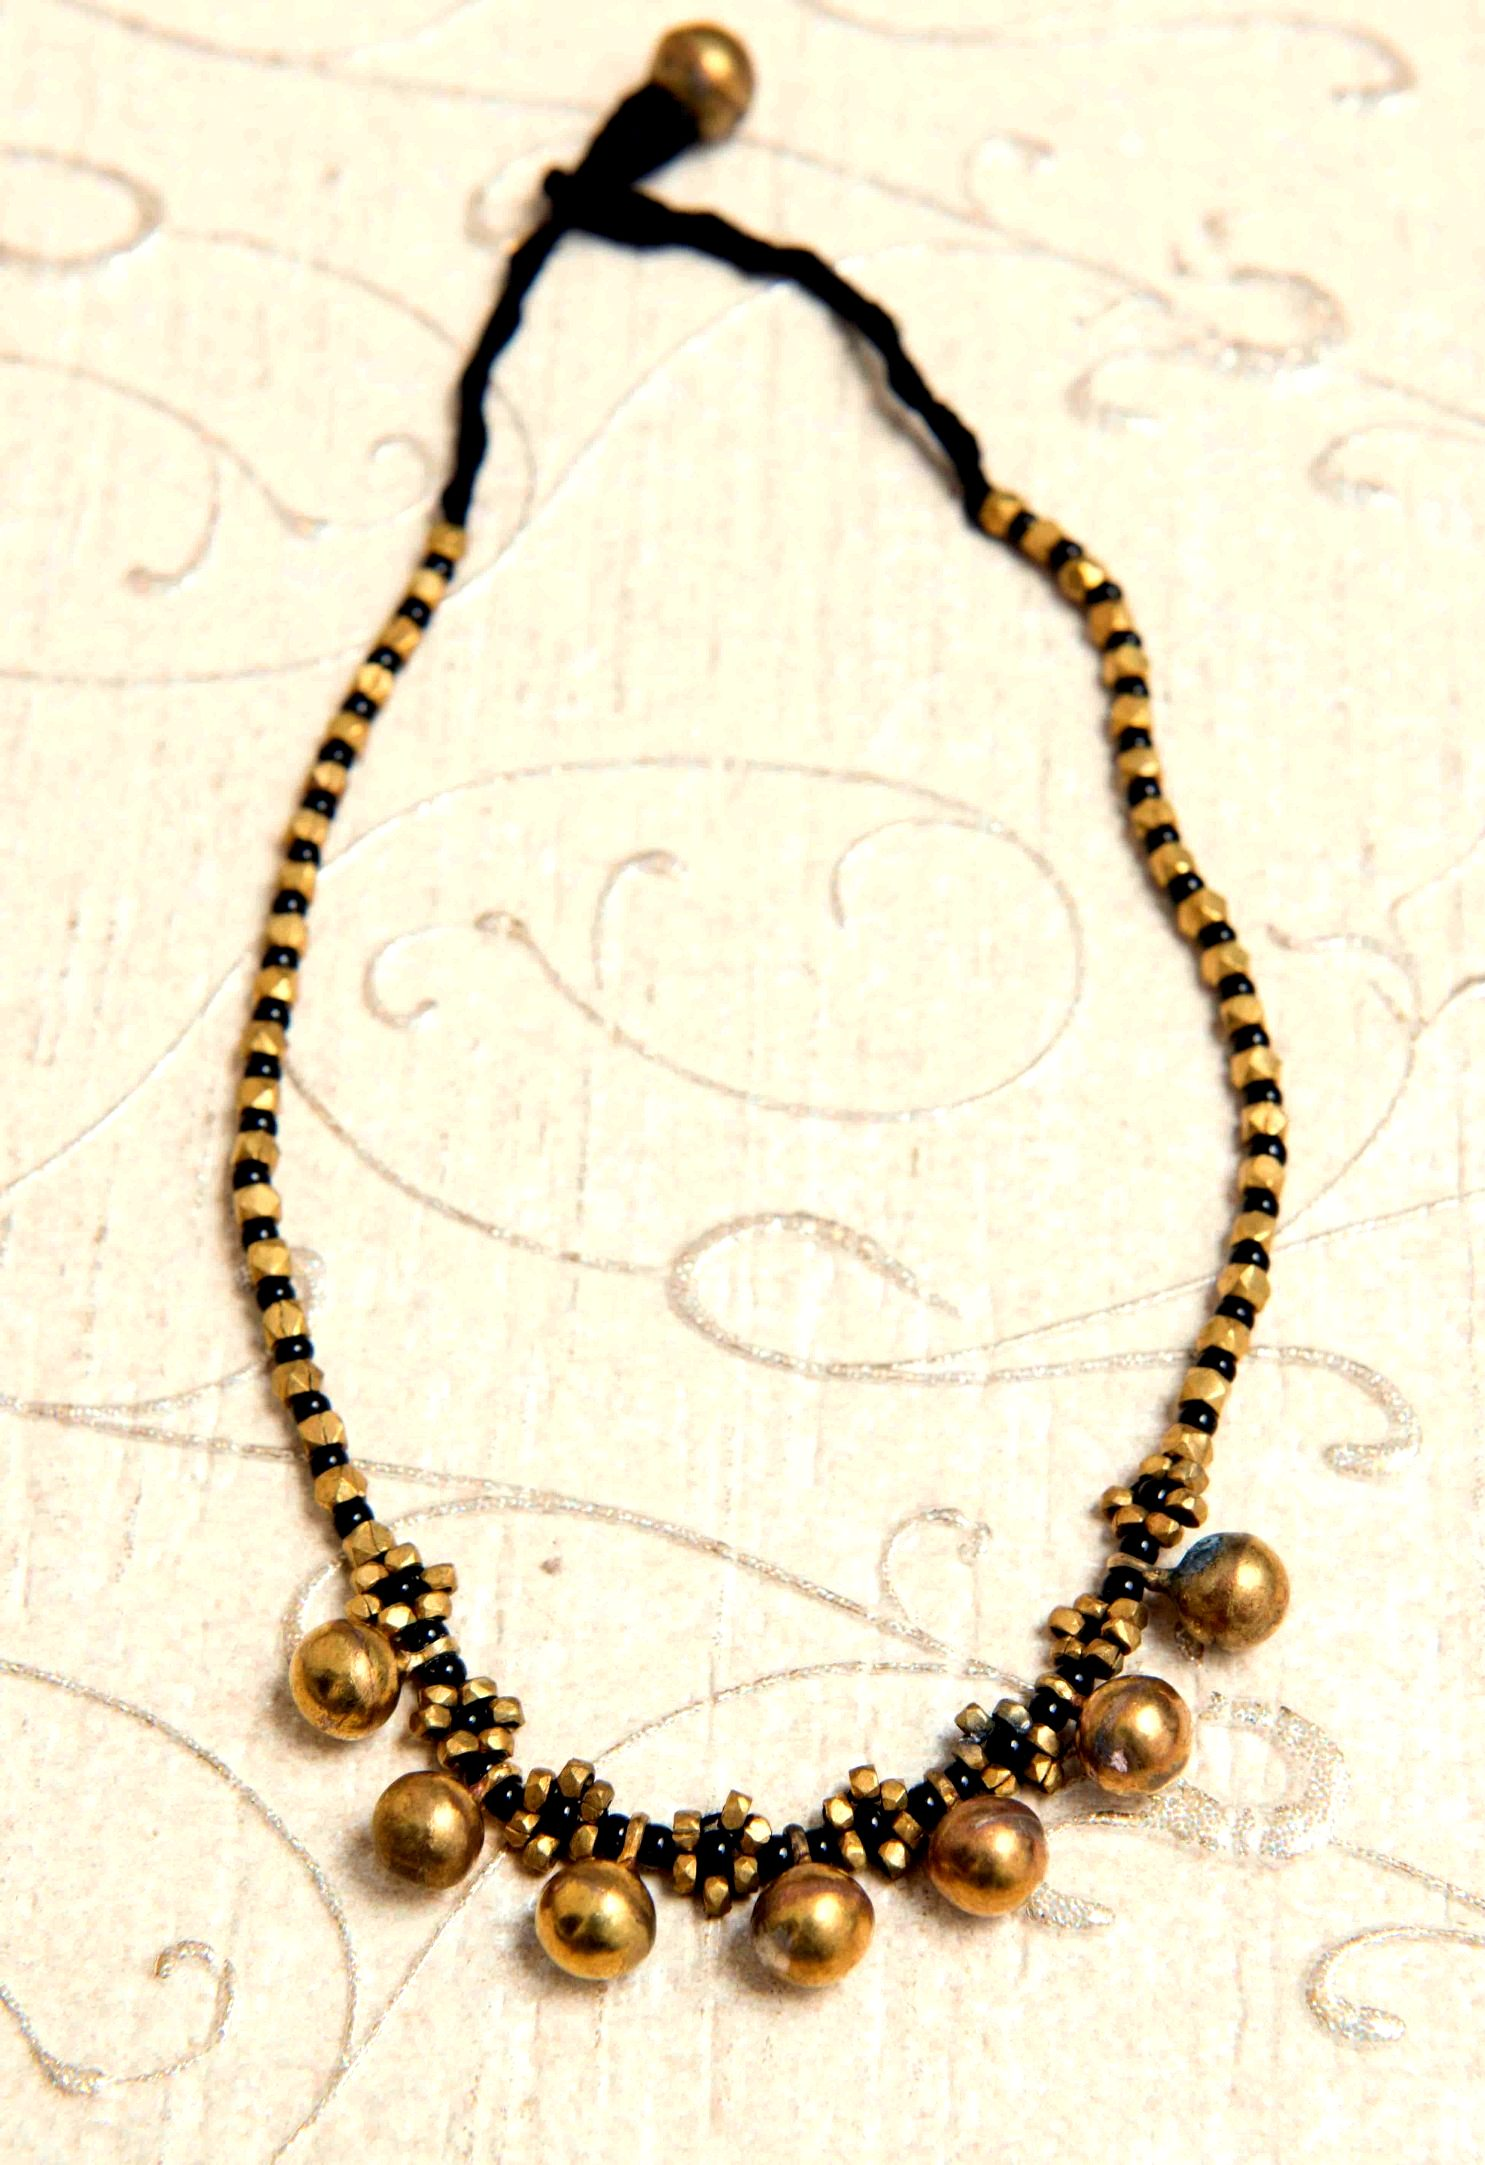 Black and Gold Beads Dhokra Neckpiece